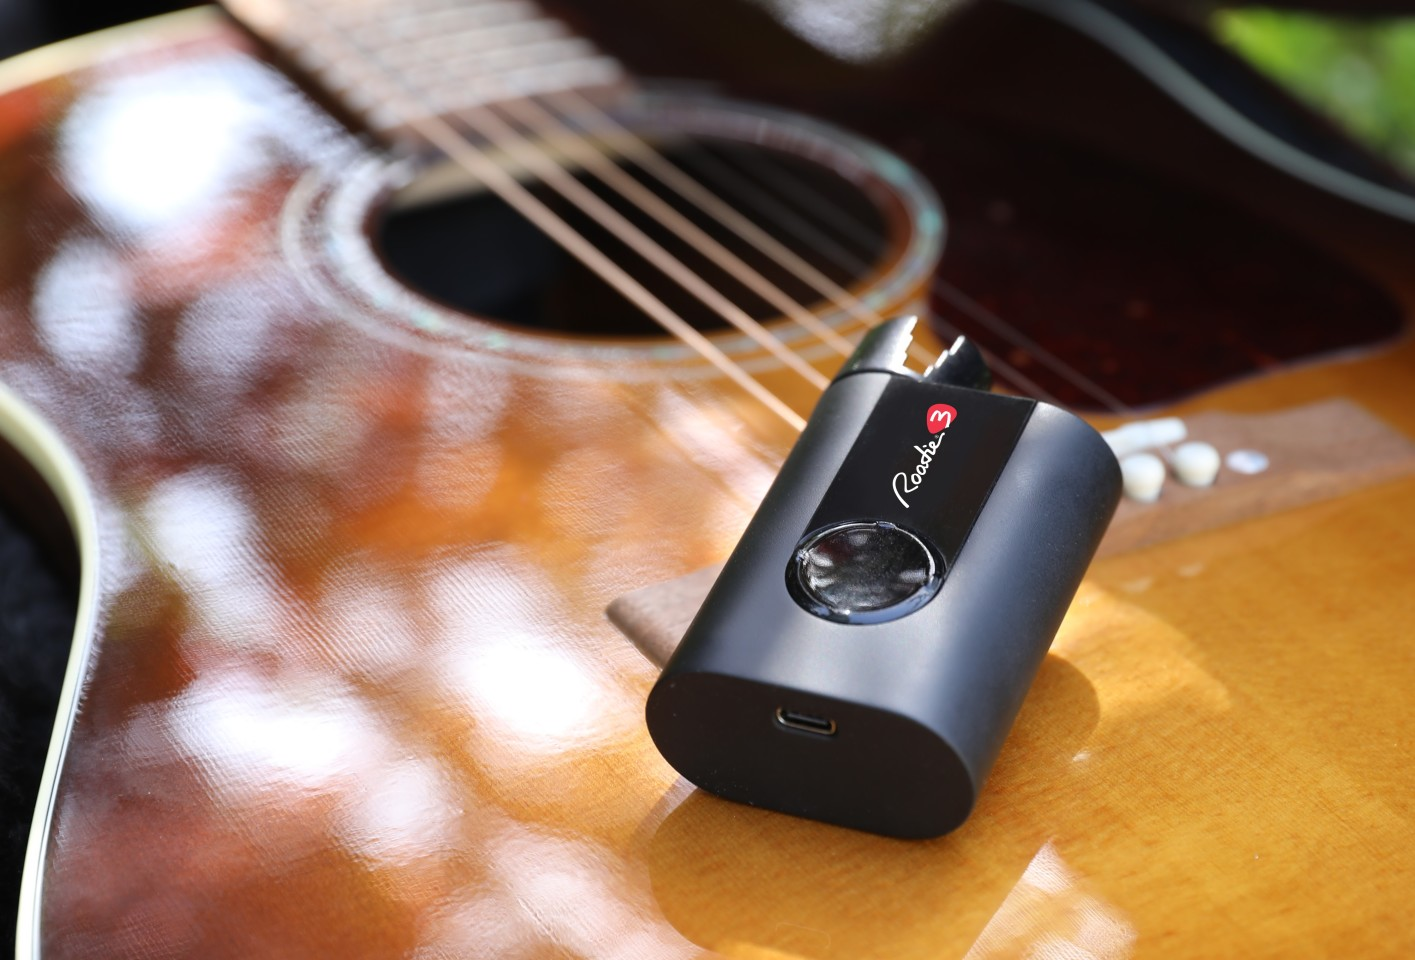 The Roadie 3's peg turner has been redesigned to accommodate more stringed instruments - including electric, acoustic, classical and steel guitars, 7, 8 and 12-string guitars, ukuleles, banjos, and mandolins